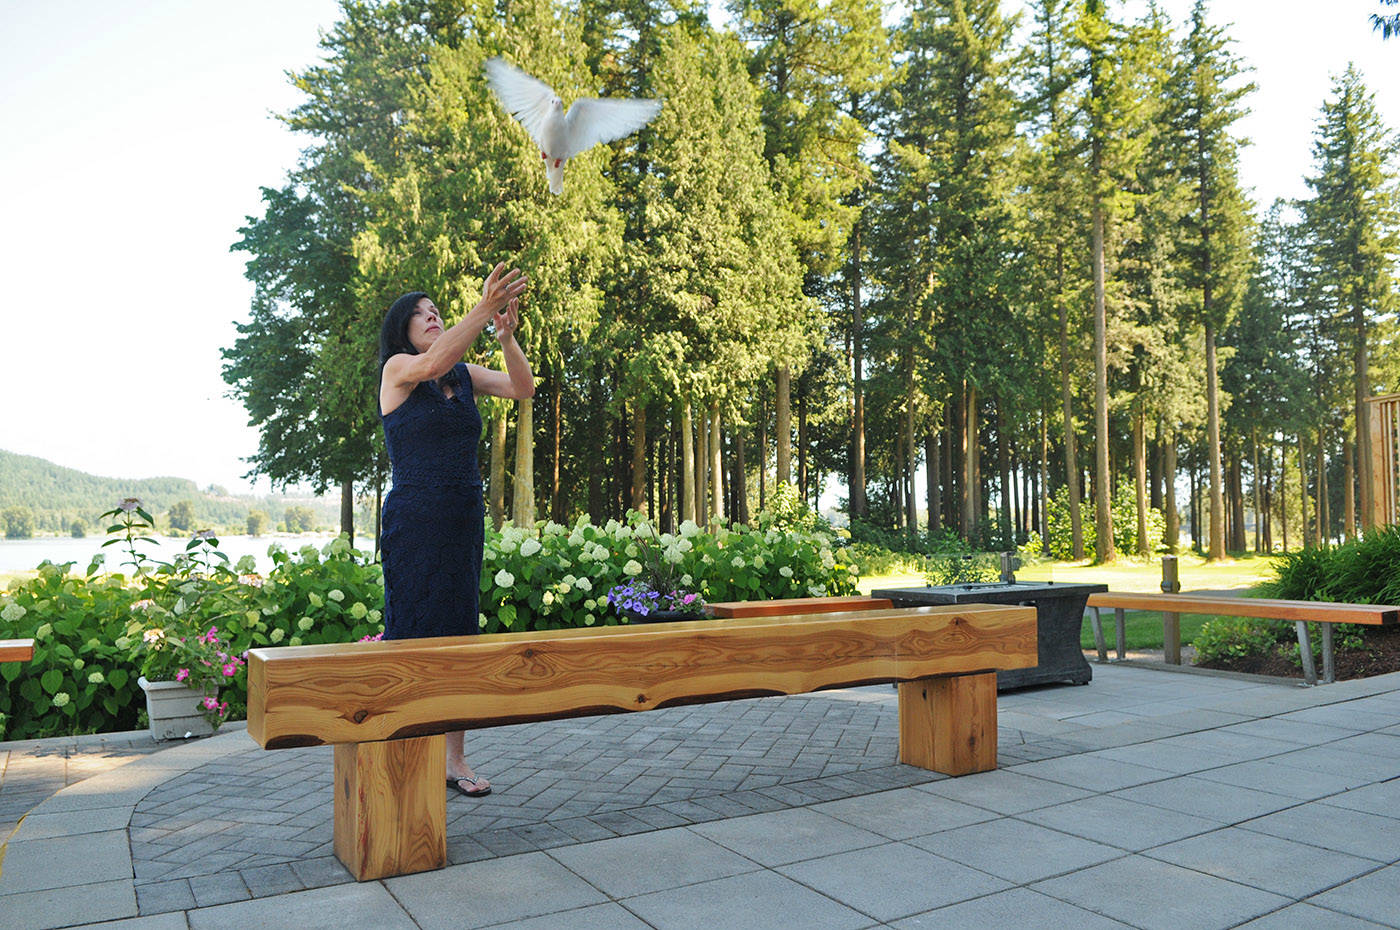 Alina Durham, mother of 23-year-old Shaelene Bell, releases a dove during her daughter's celebration of life at Sandpiper Resort on Saturday, June 26, 2021. (Jenna Hauck/ Chilliwack Progress)